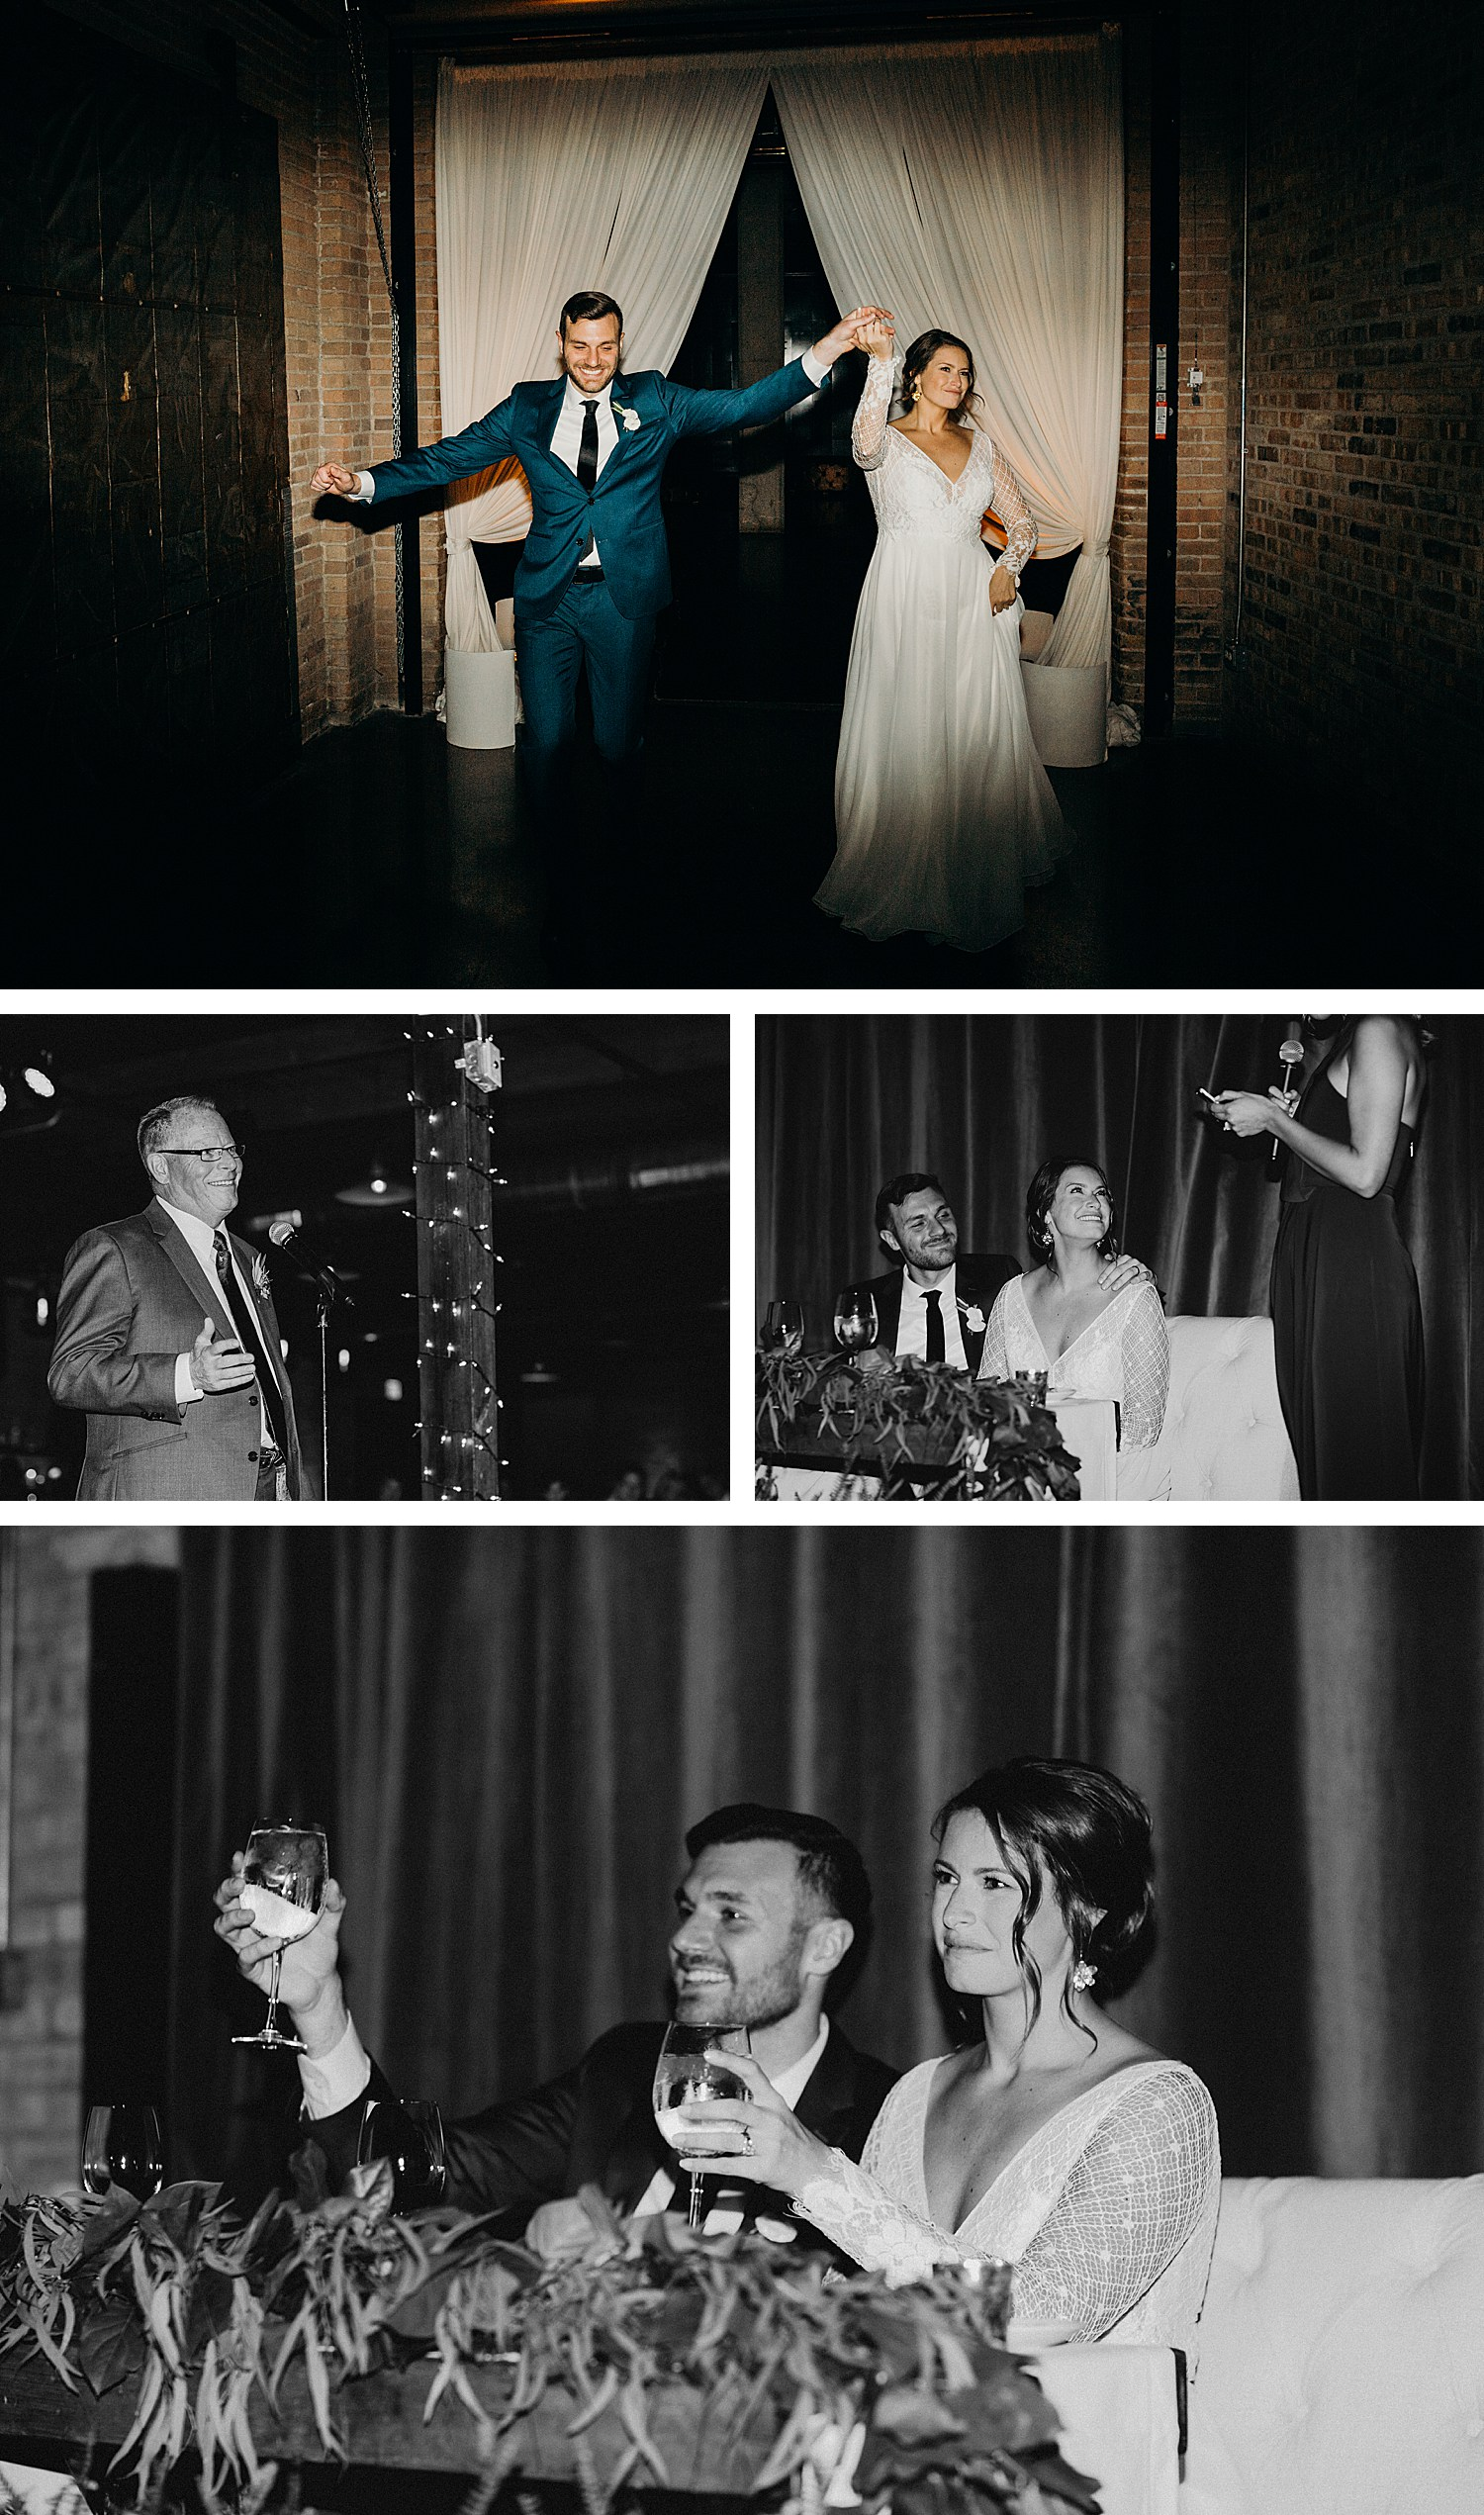 Boho Industrial Wedding at Morgan Manufacturing planned LK Events in Chicago